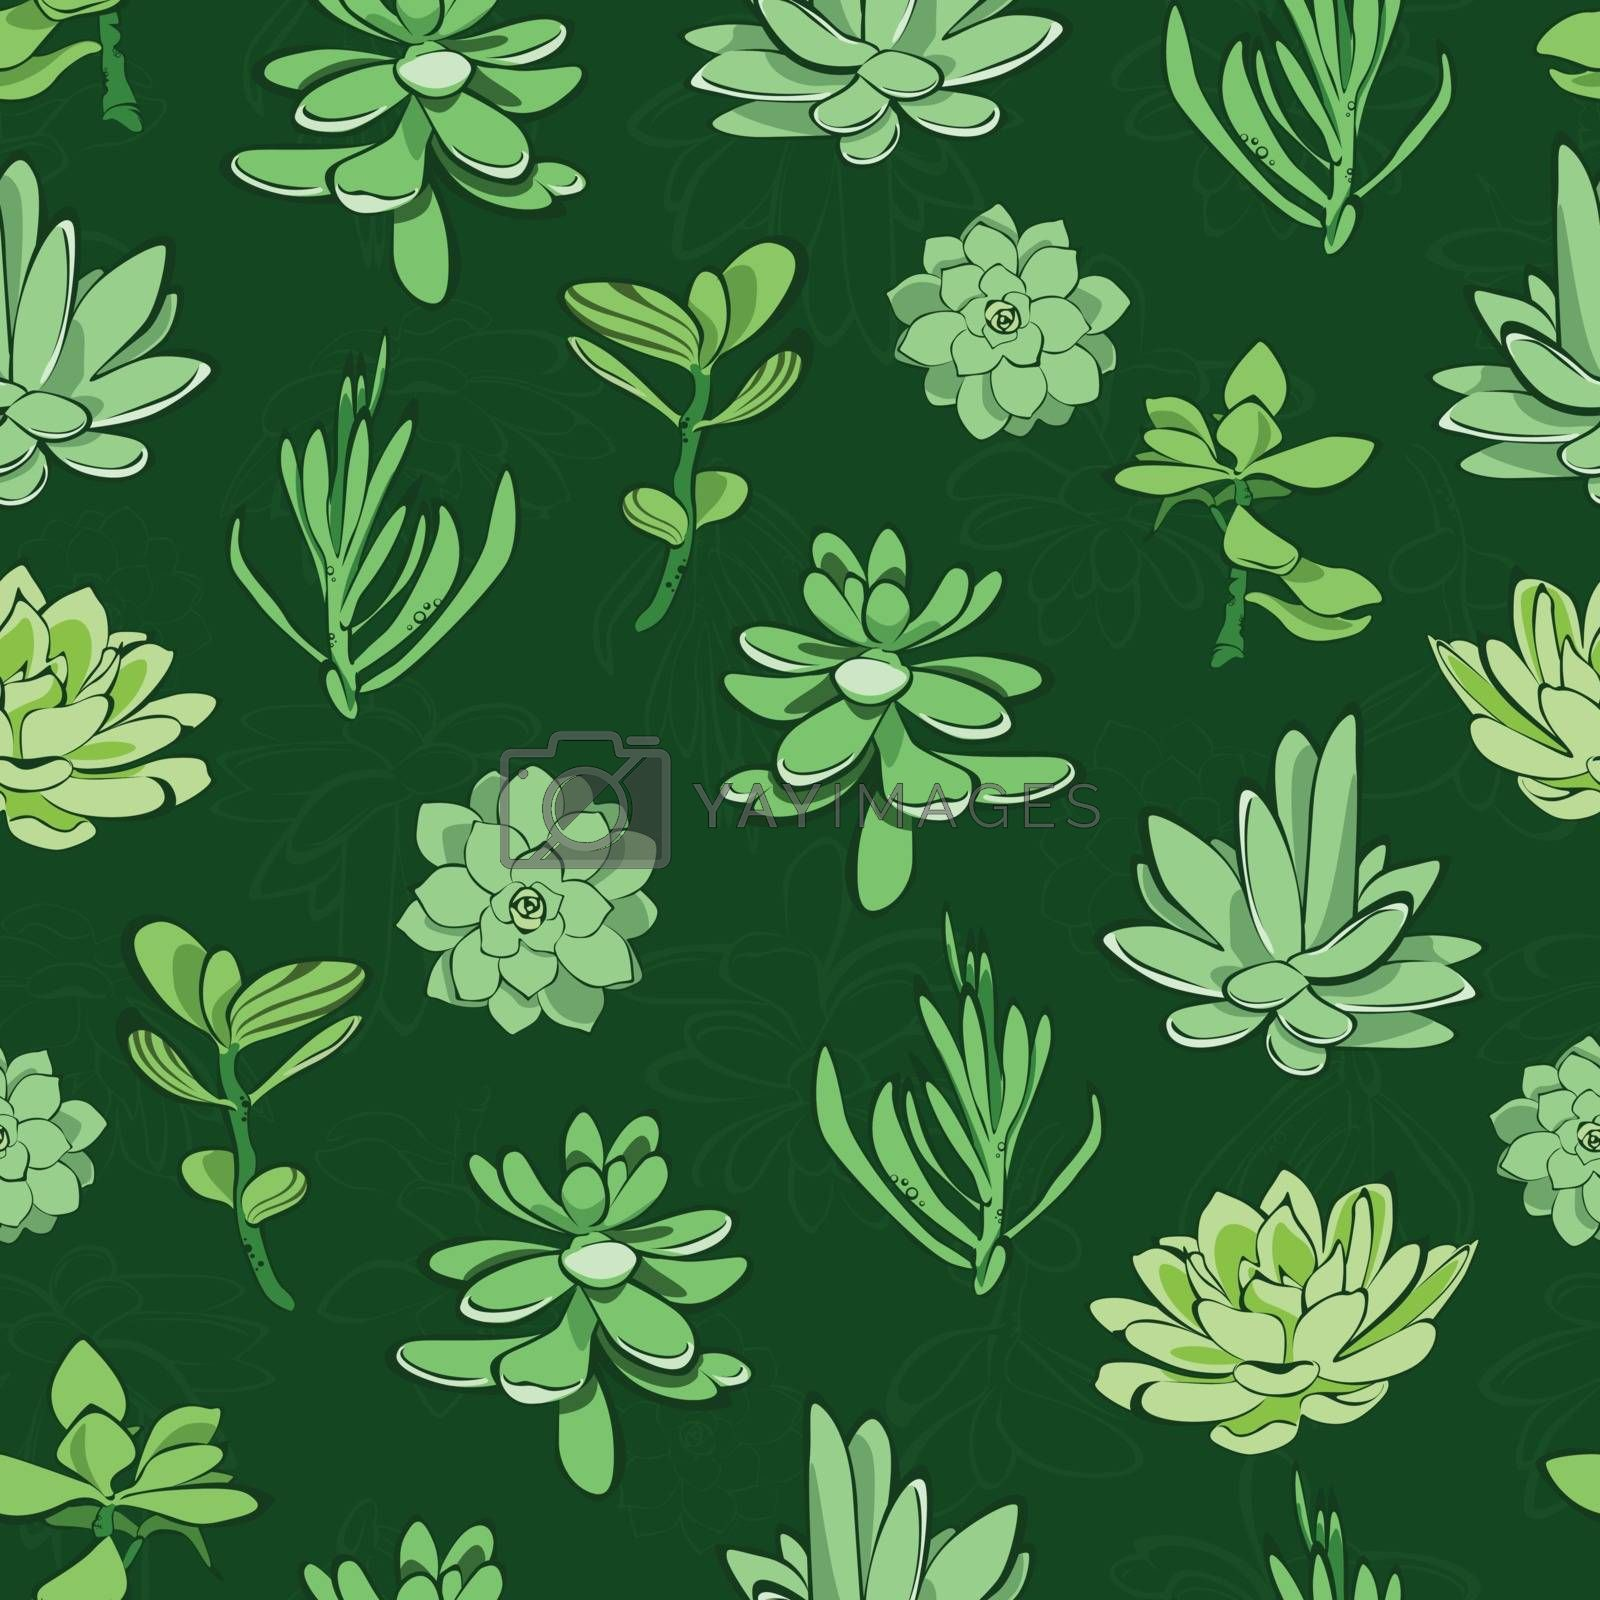 Vector fresh green succulents seamless pattern background graphic design